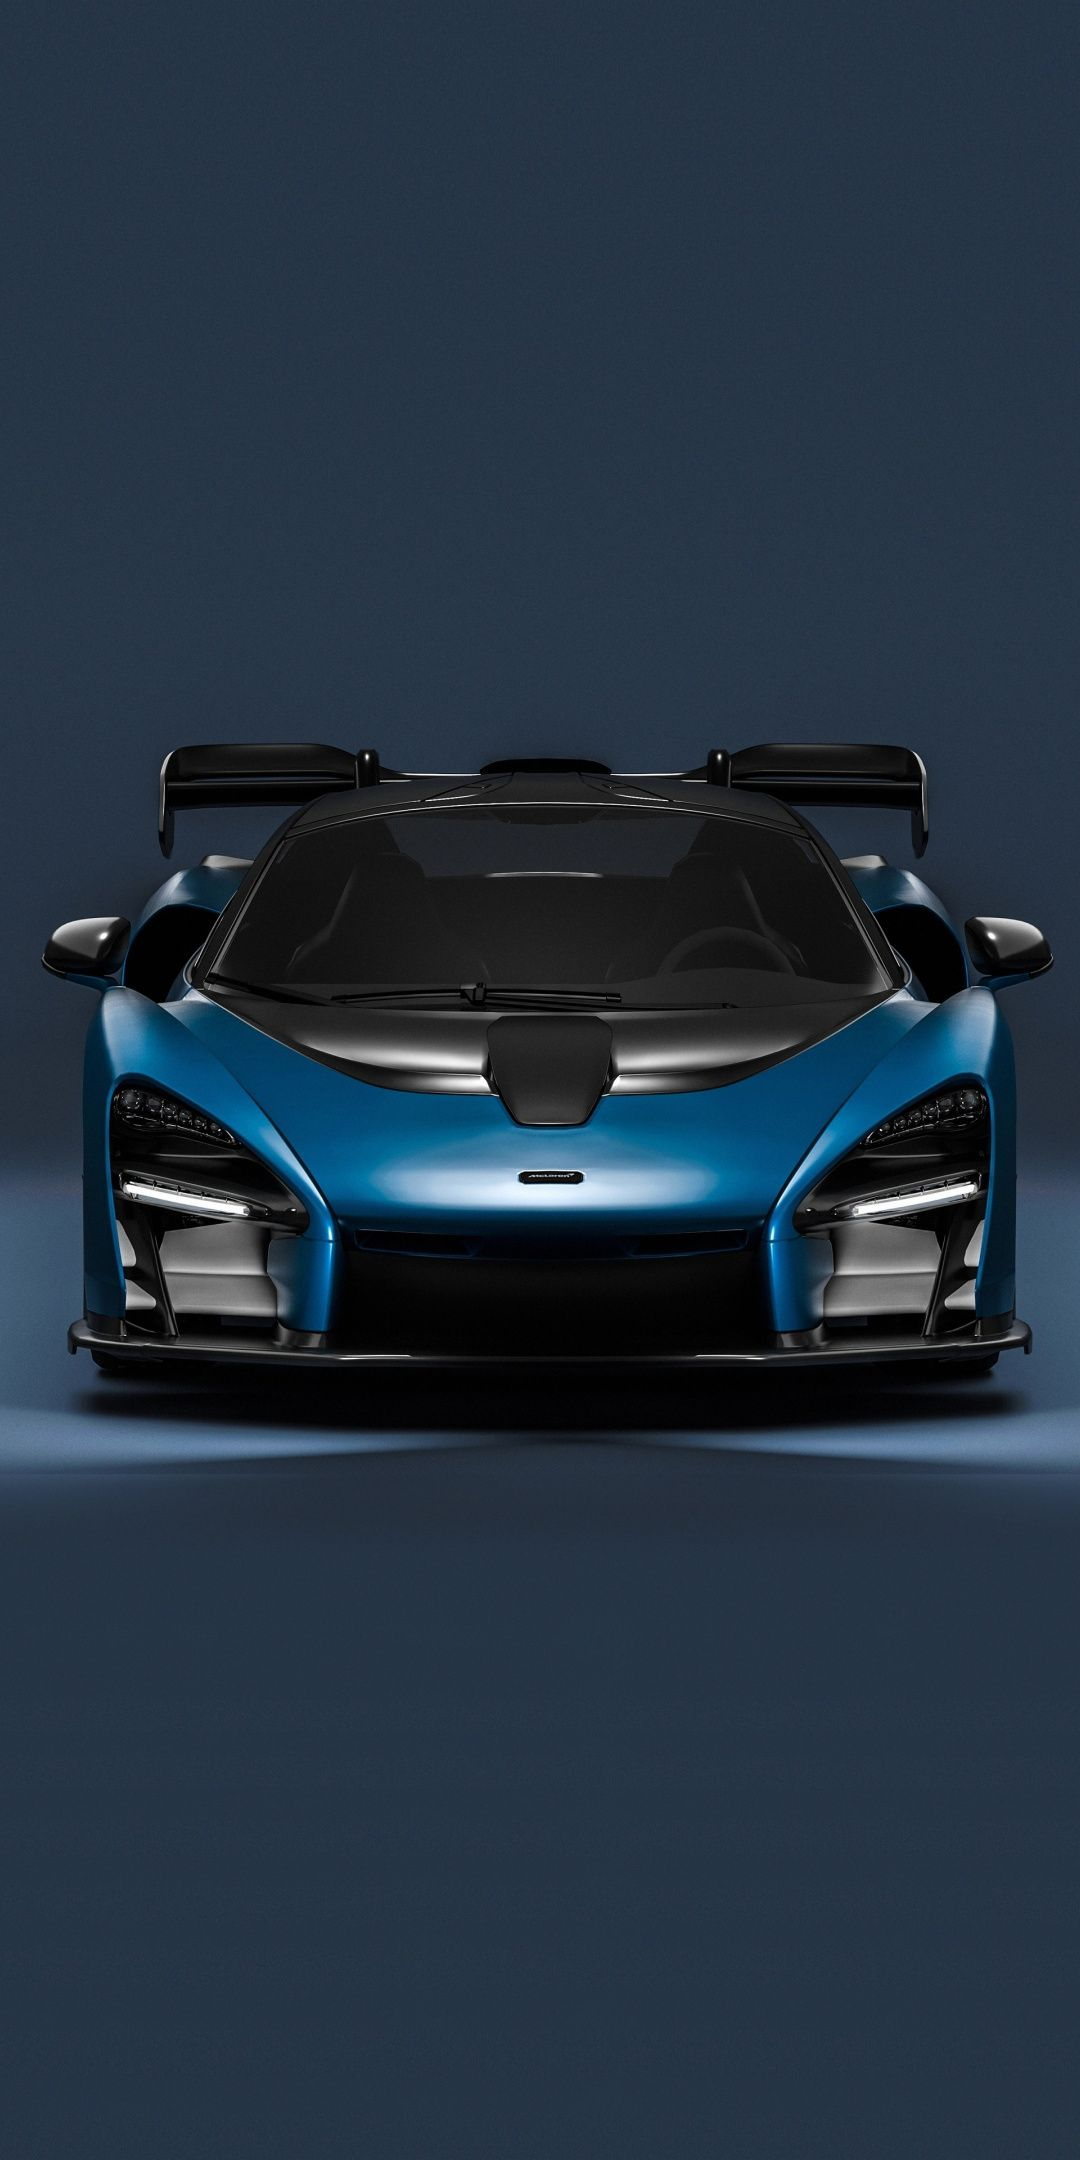 Sports Car Mclaren Senna Blue 2018 1080x2160 Wallpaper Sports Car Super Luxury Cars Sports Cars Luxury